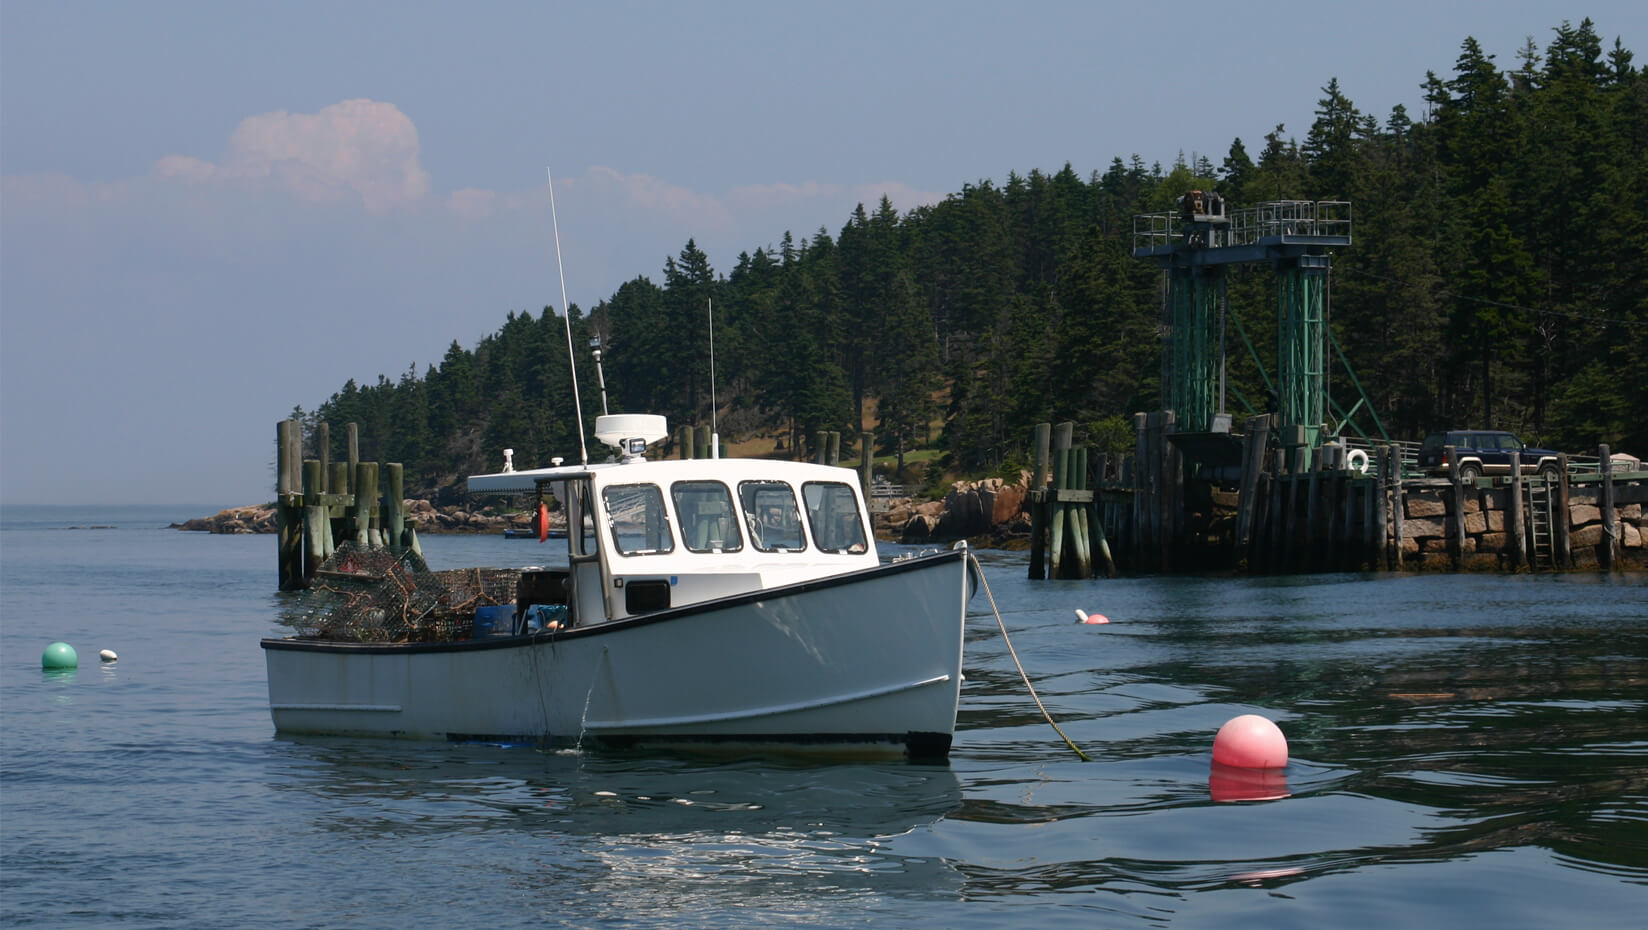 A lobster boat in the Gulf of Maine